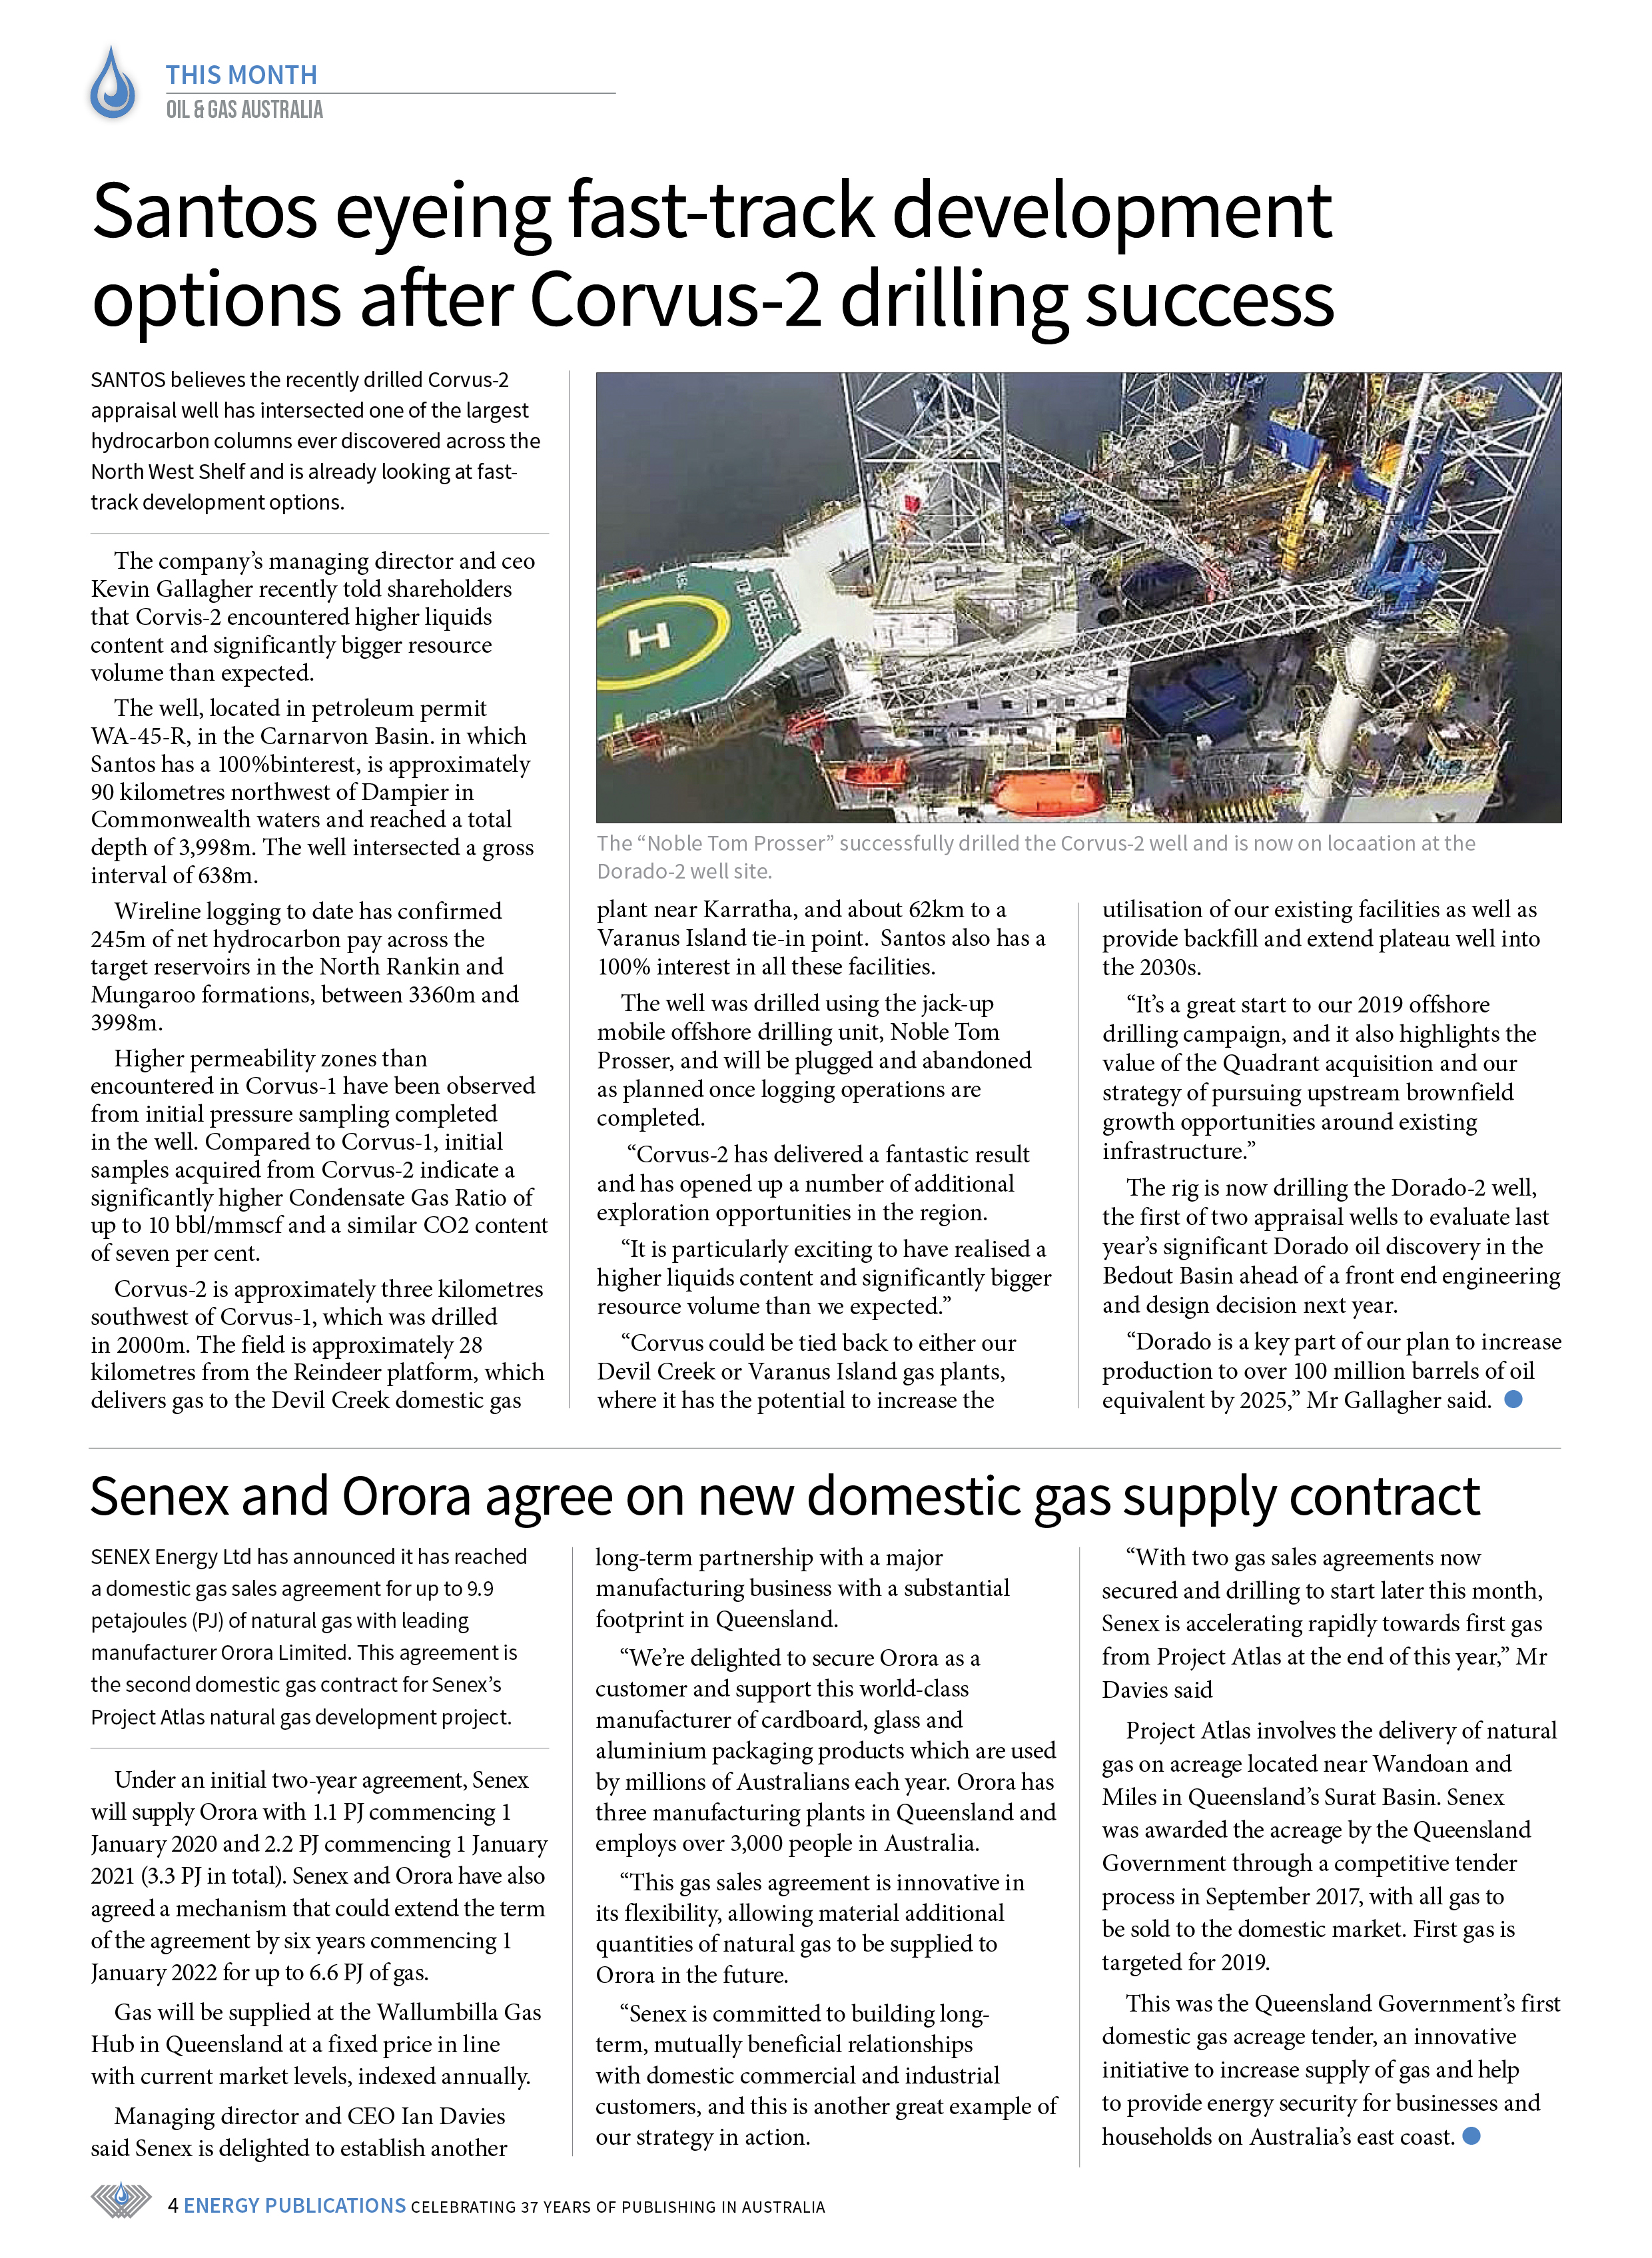 Oil & Gas Australia – May 2019 – Page 4